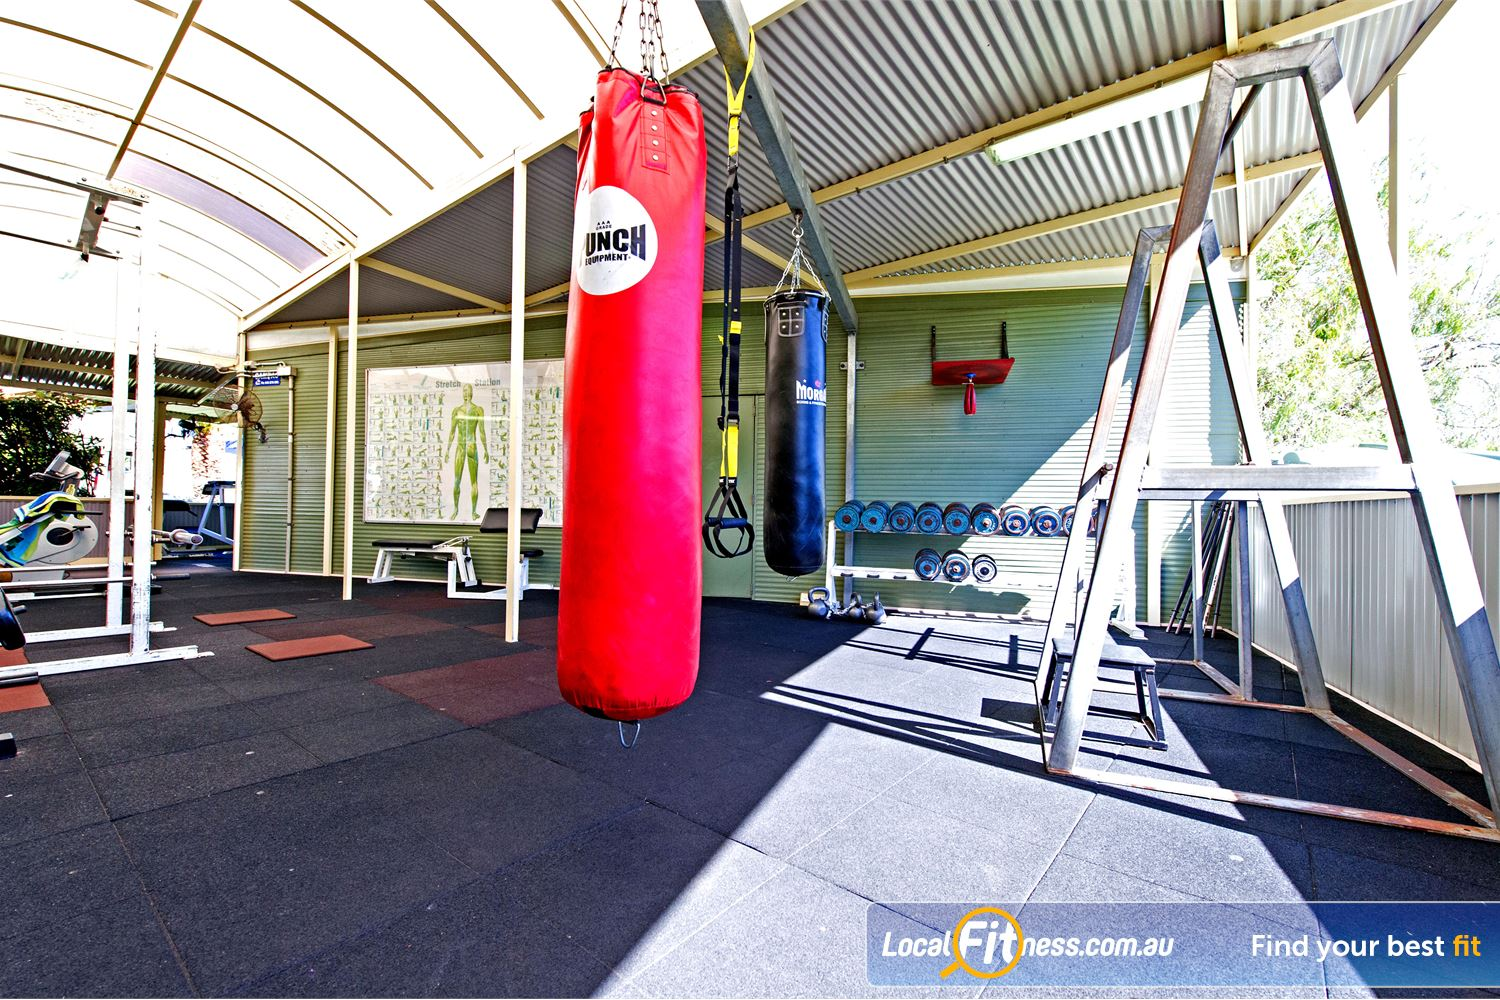 Waves Fitness and Aquatic Centre Near Winston Hills Incorporating boxing and TRX training into your workout.